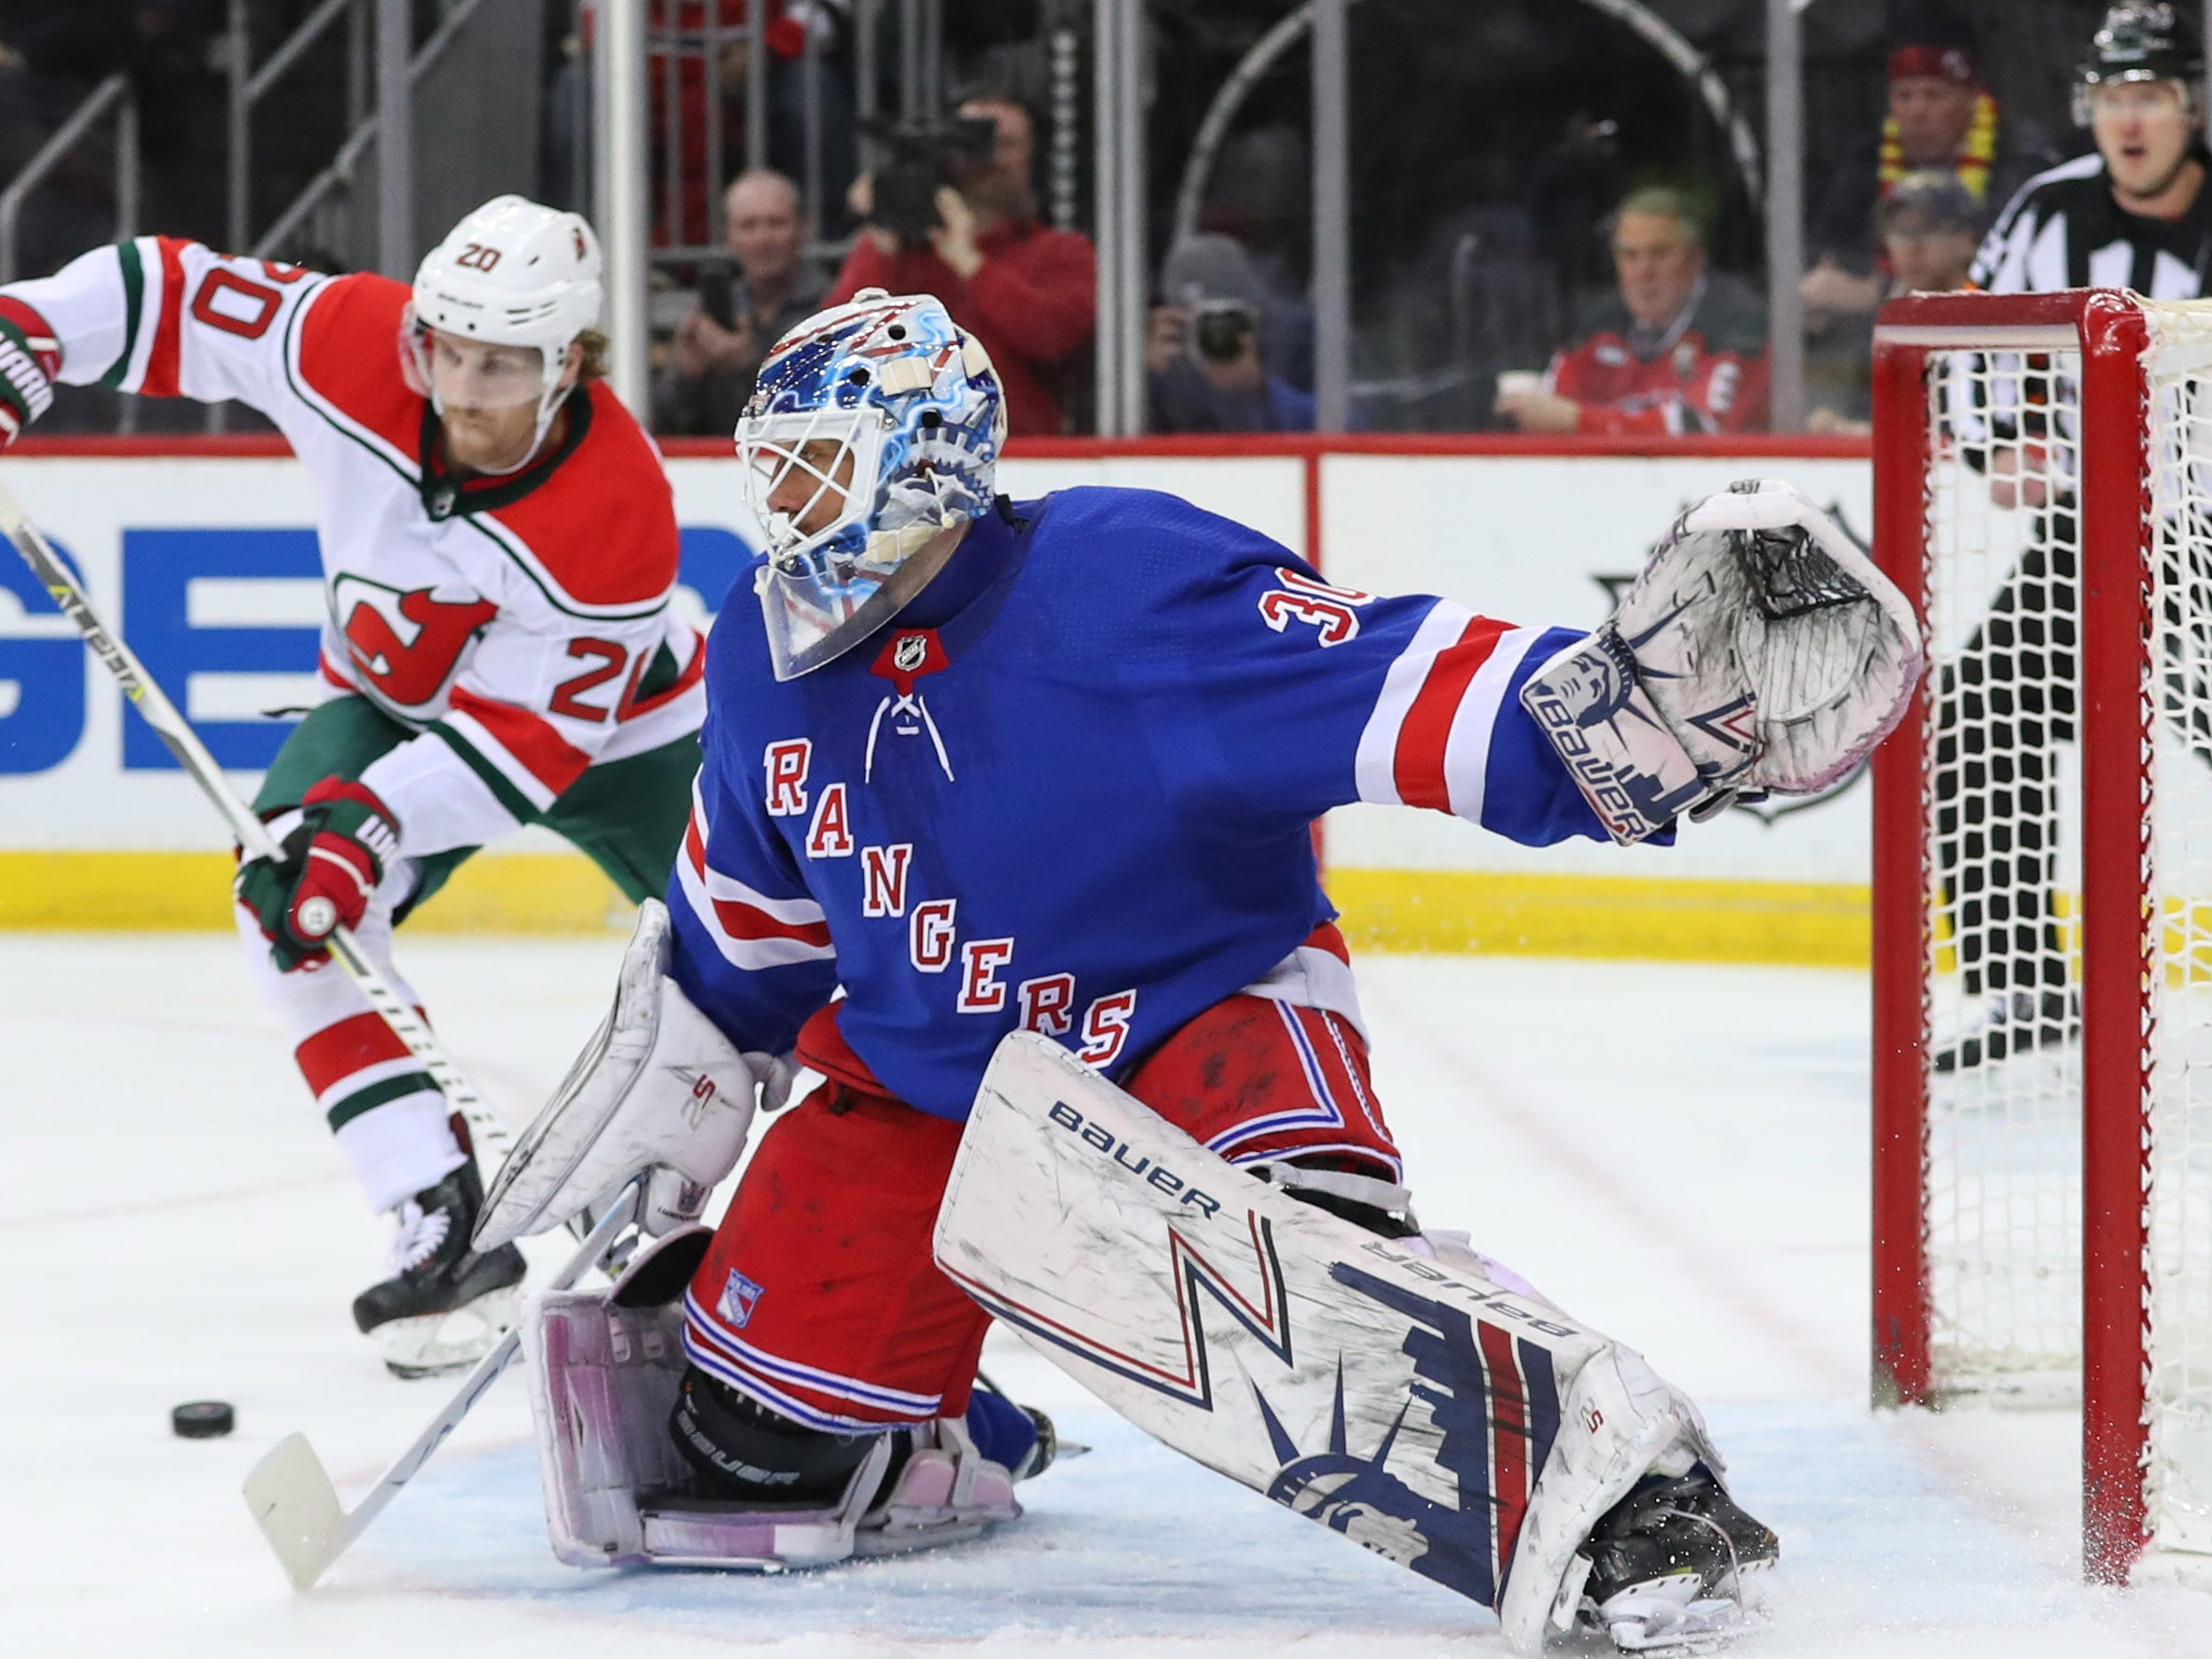 Jan 31, 2019; Newark, NJ, USA; New Jersey Devils center Blake Coleman (20) plays the puck while New York Rangers goaltender Henrik Lundqvist (30) defends his net during the second period at Prudential Center.